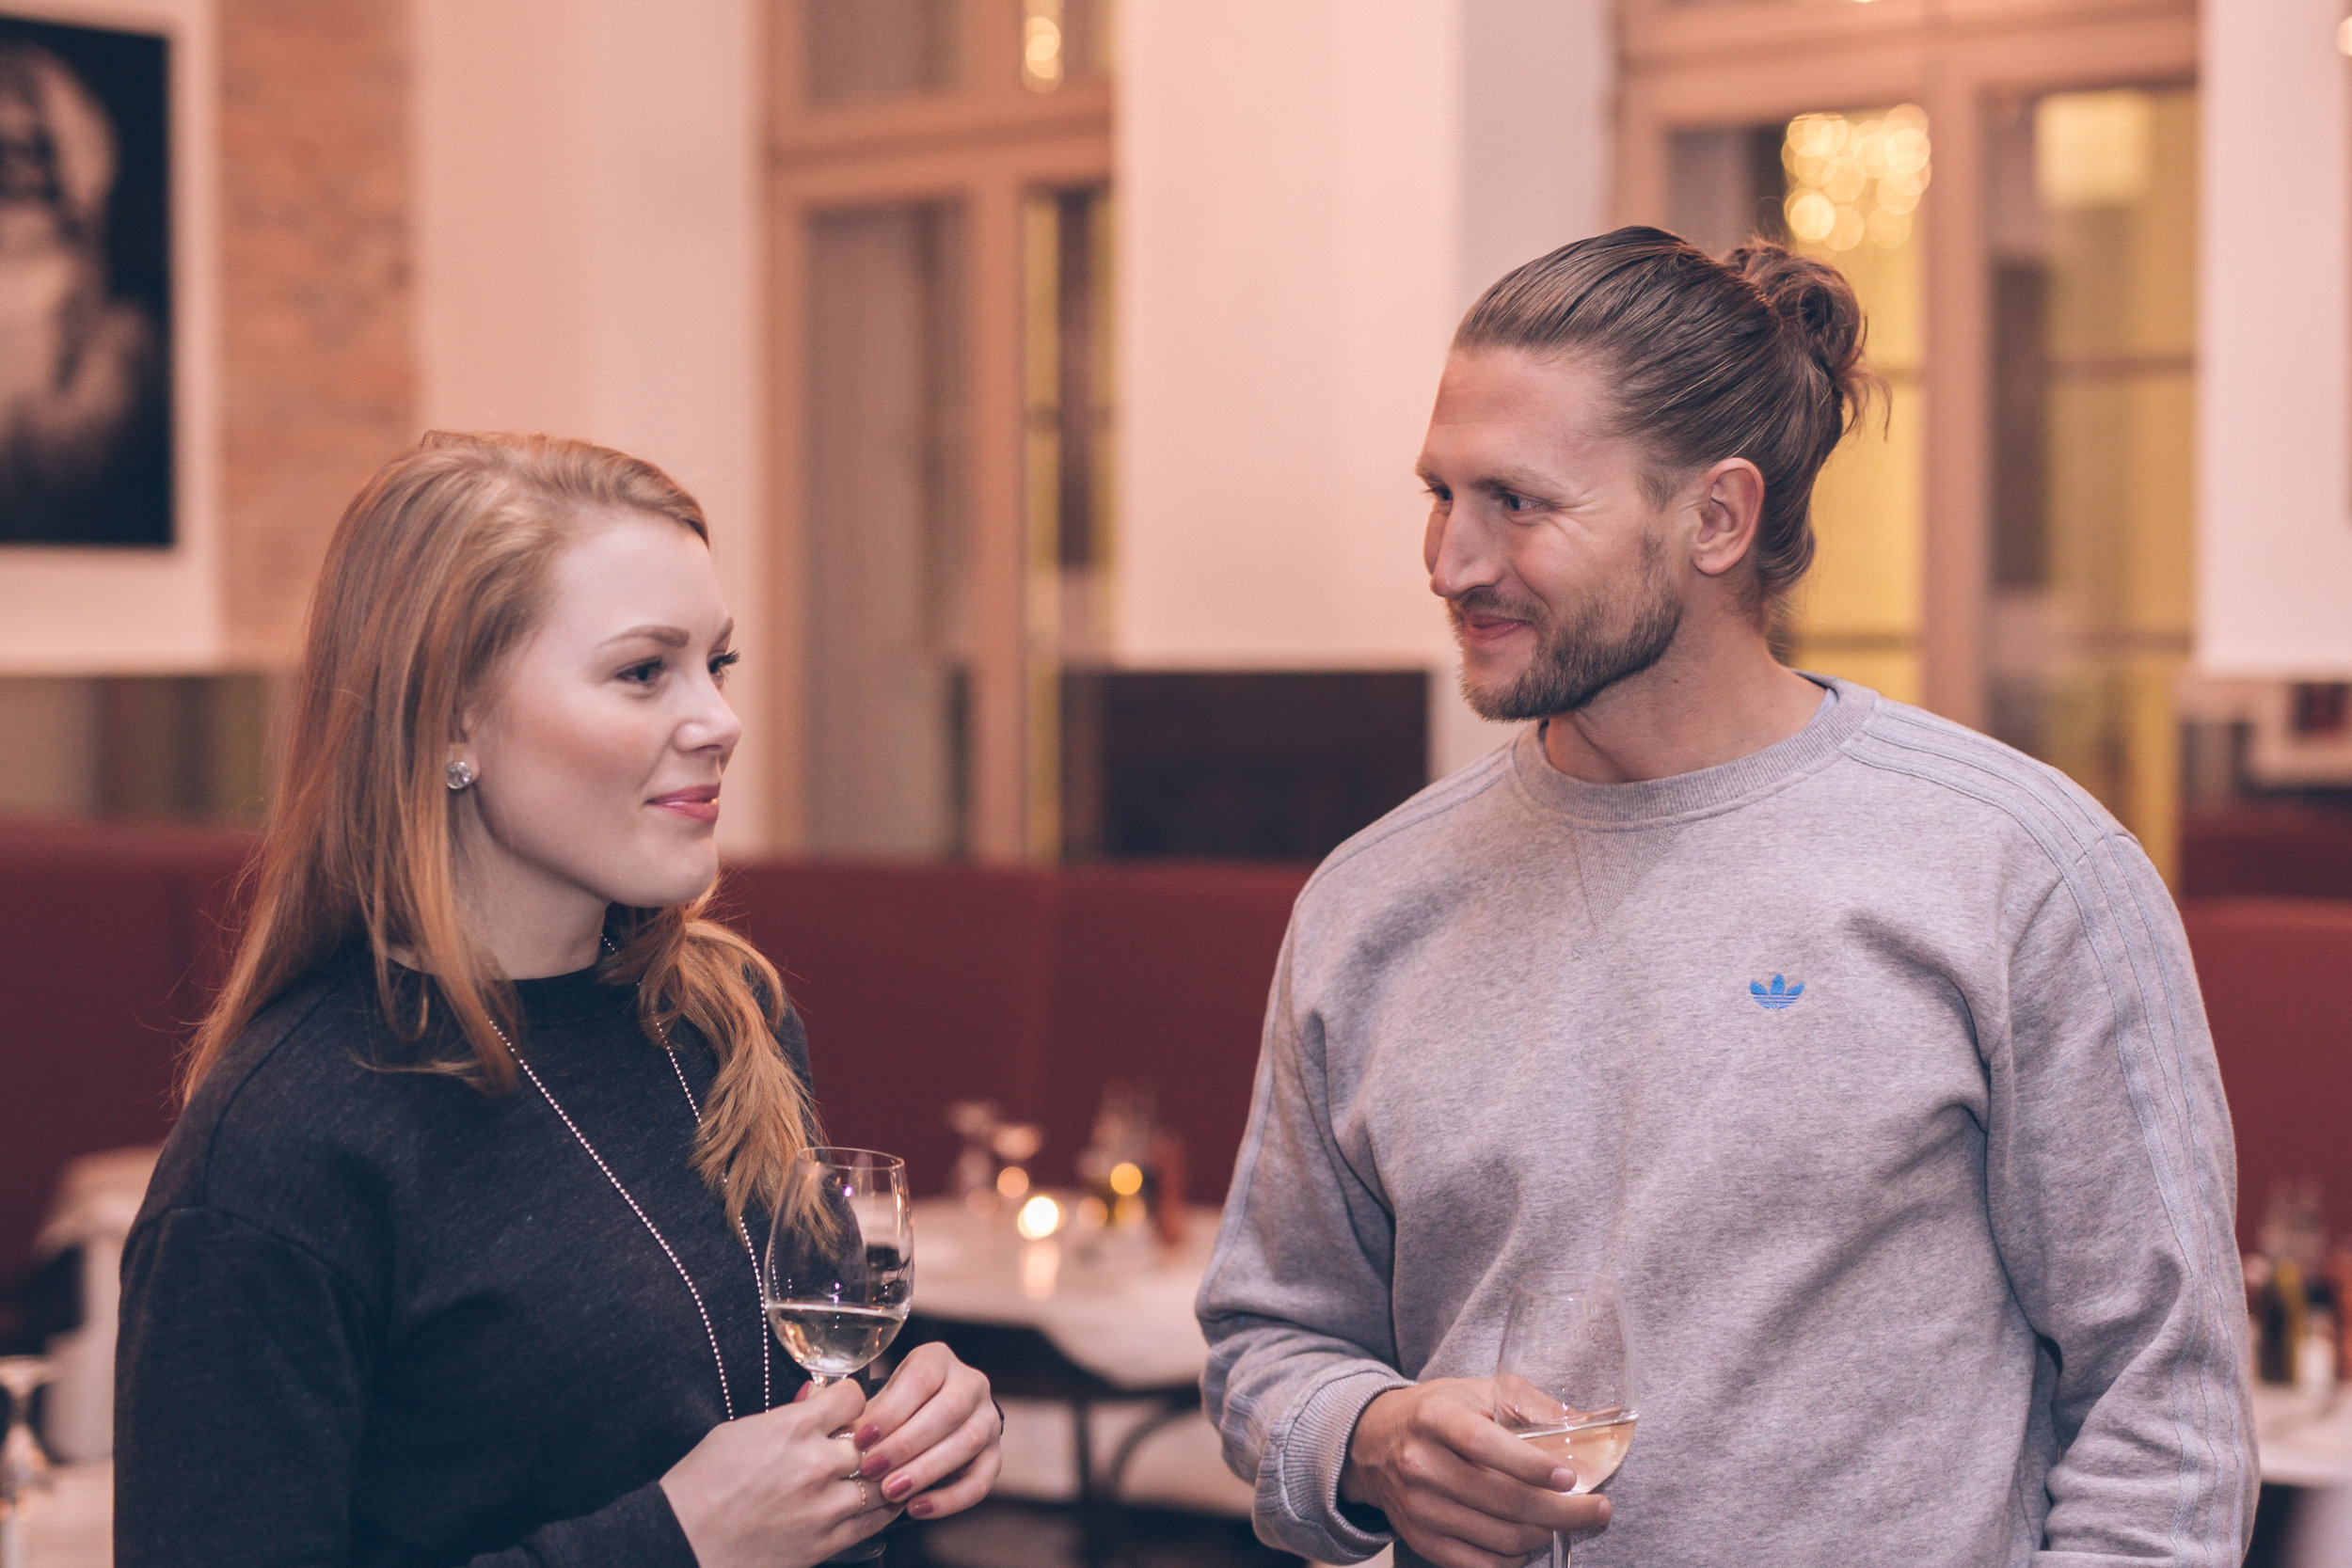 PrivateSoulFoodConcert-18.12.2016-Offenblende-36.jpg